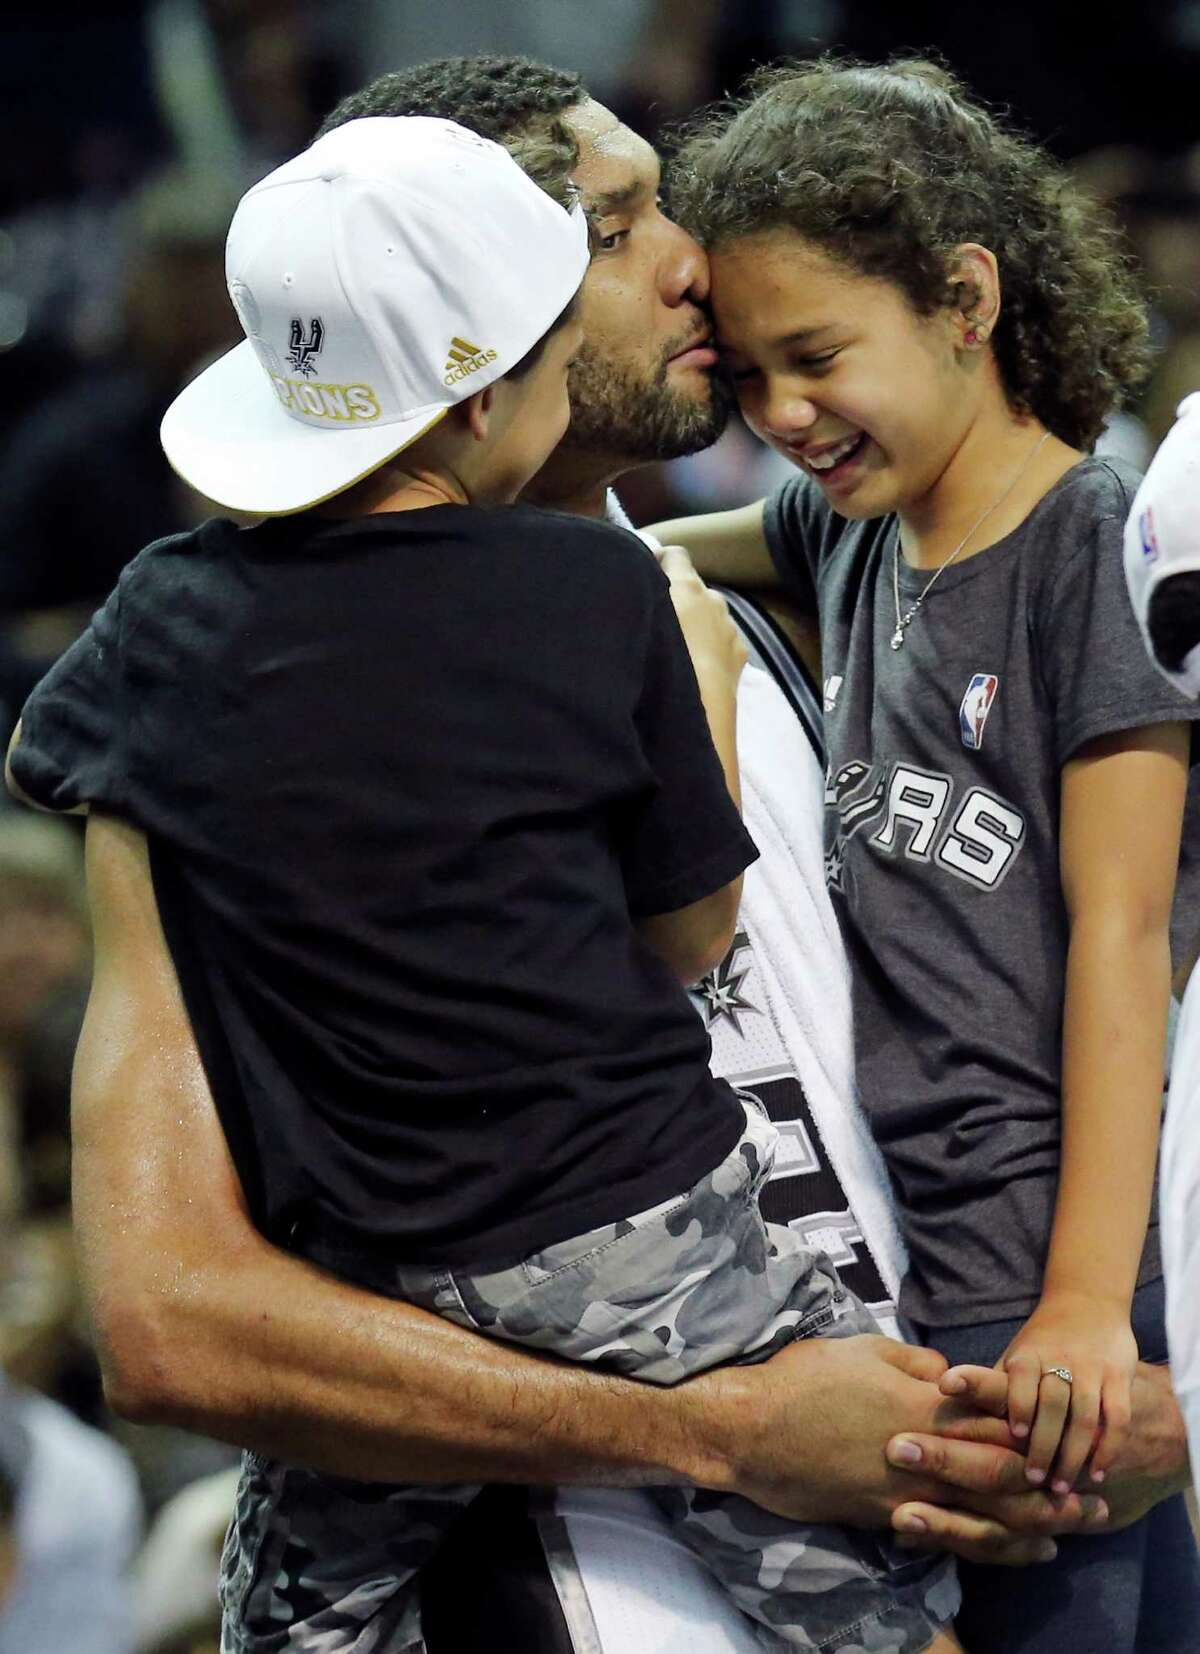 San Antonio Spurs' Tim Duncan holds his children Draven (left) and Sydney after Game 5 of the 2014 NBA Finals against the Miami Heat on June 15, 2014 at the AT&T Center. The Spurs won 104-87.